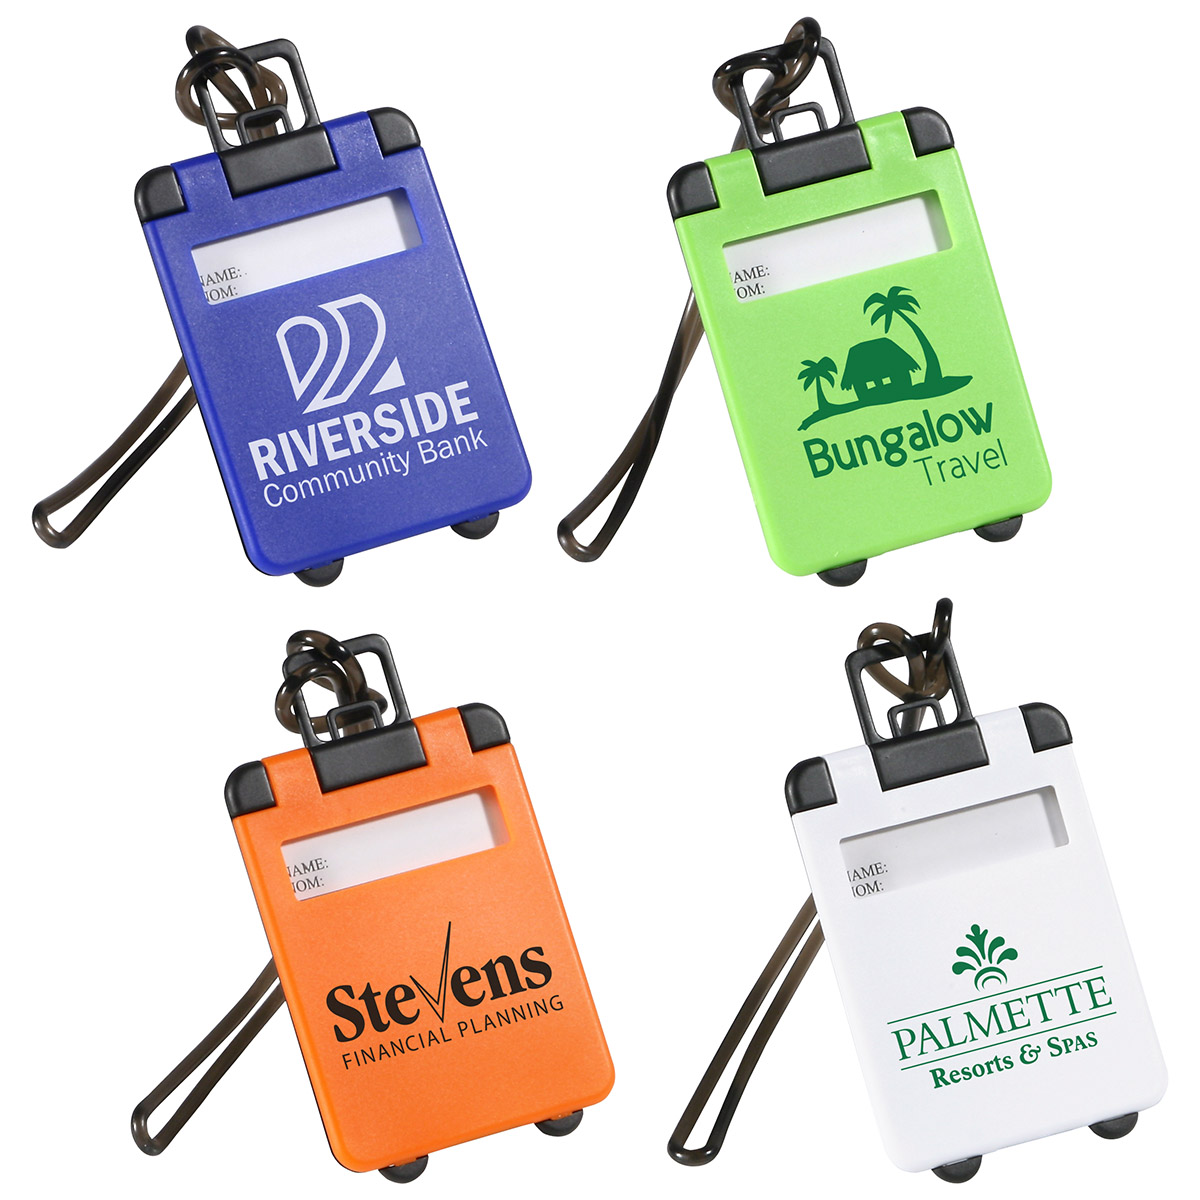 Travel Tote Luggage Tag, WTV-TT10 - 1 Colour Imprint